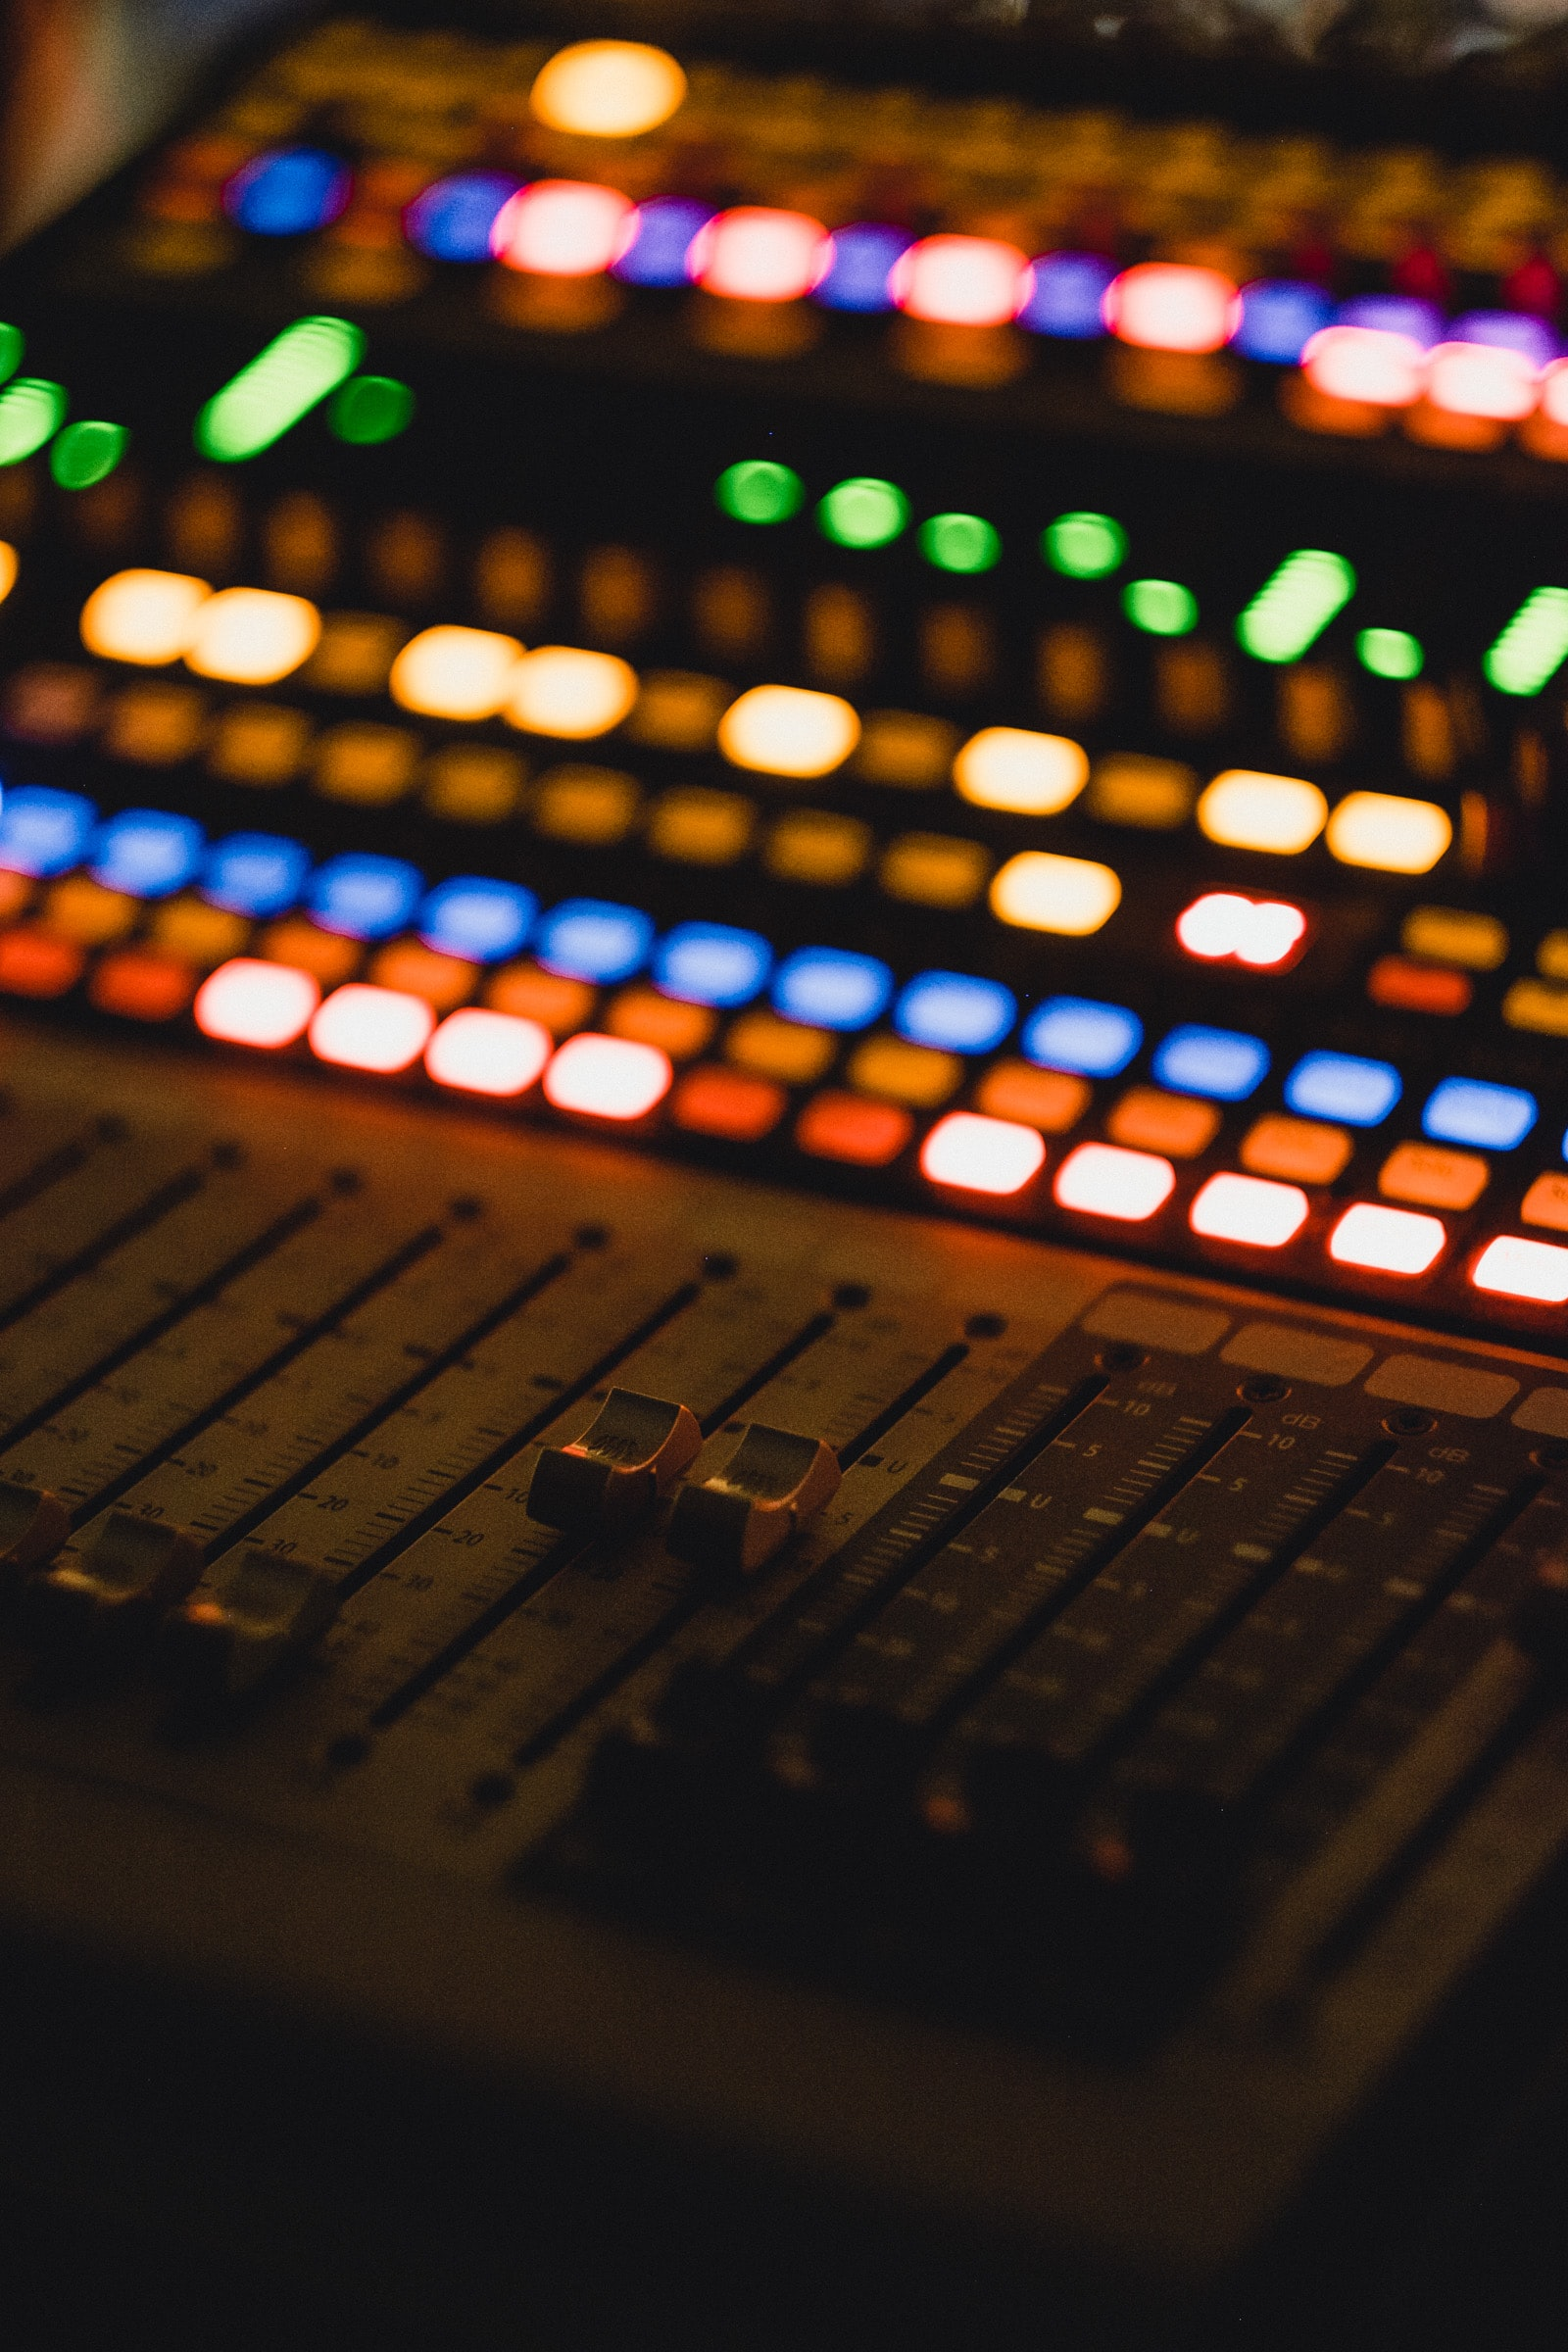 Need mixing or mastering? Look no further!